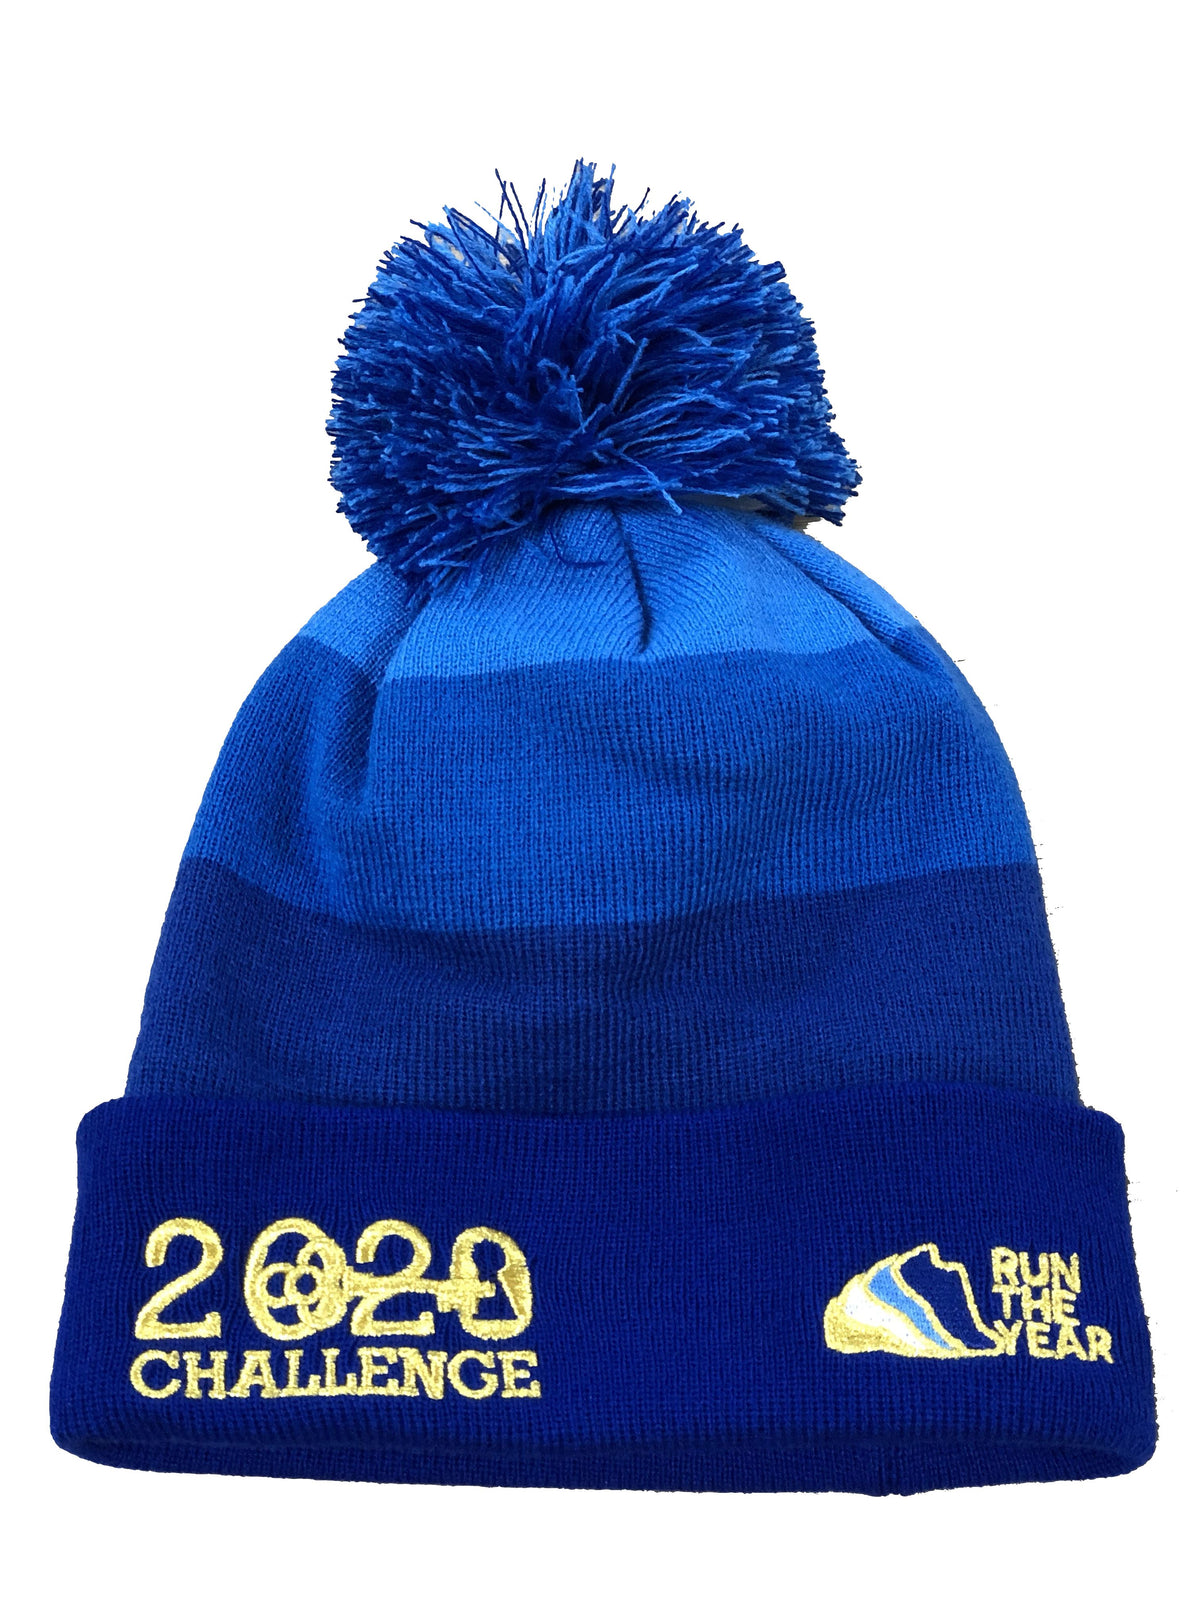 Run The Year 2020 Pom Pom Beanie Accessories Run The Edge